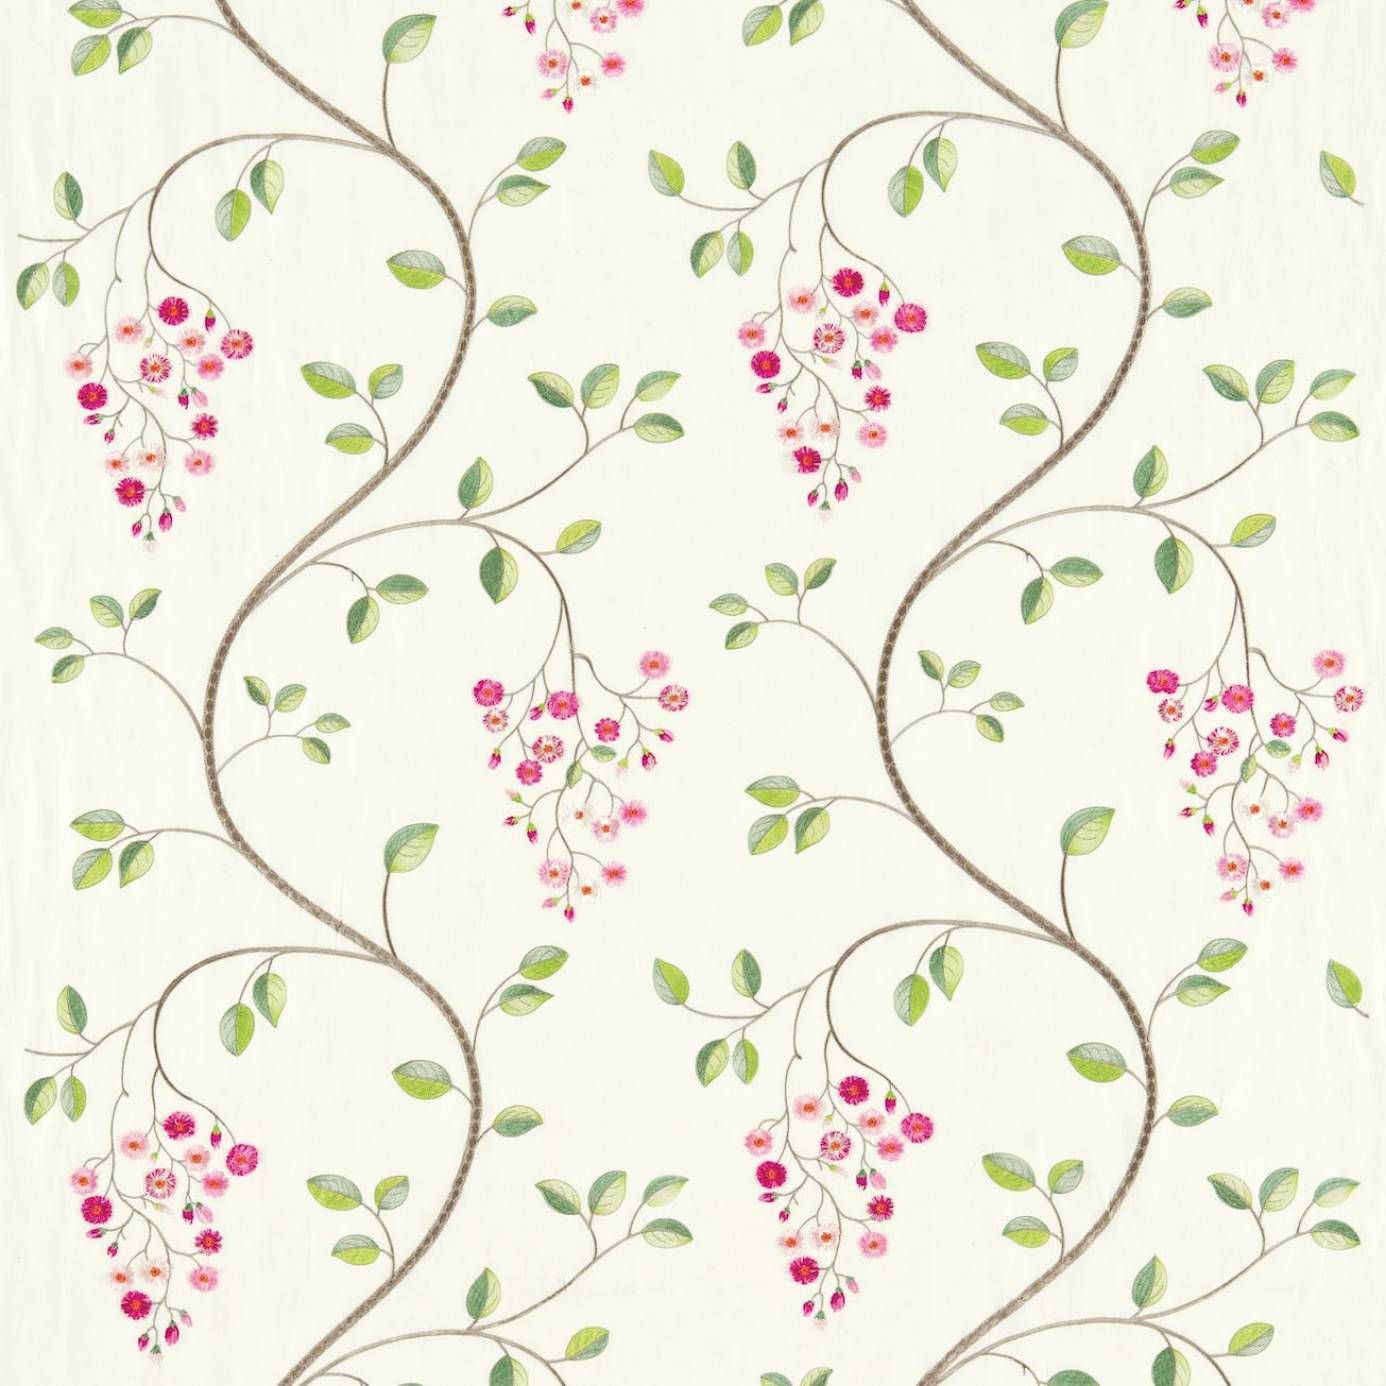 Sanderson Asami Embroidery Fabric Fuchsia Green Product